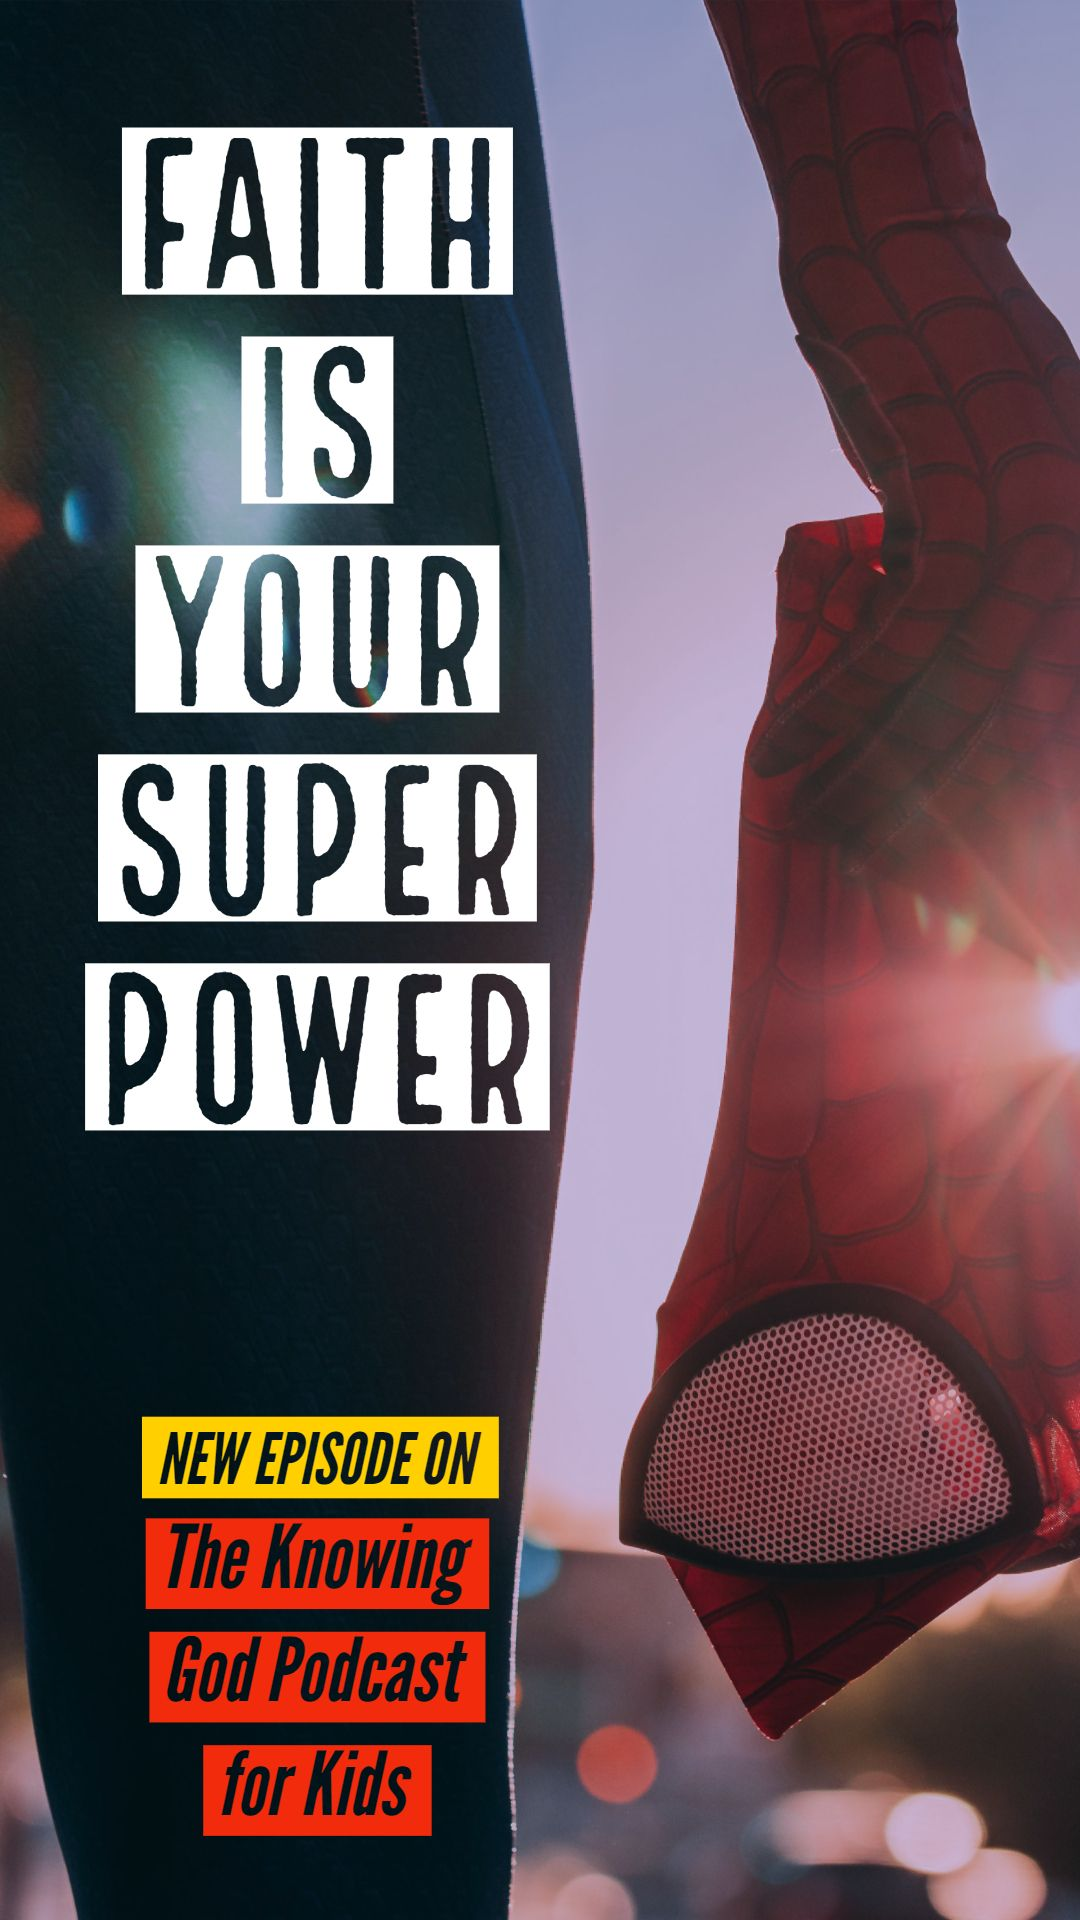 Faith Is Your Super Power Check Out Episode 34 On The